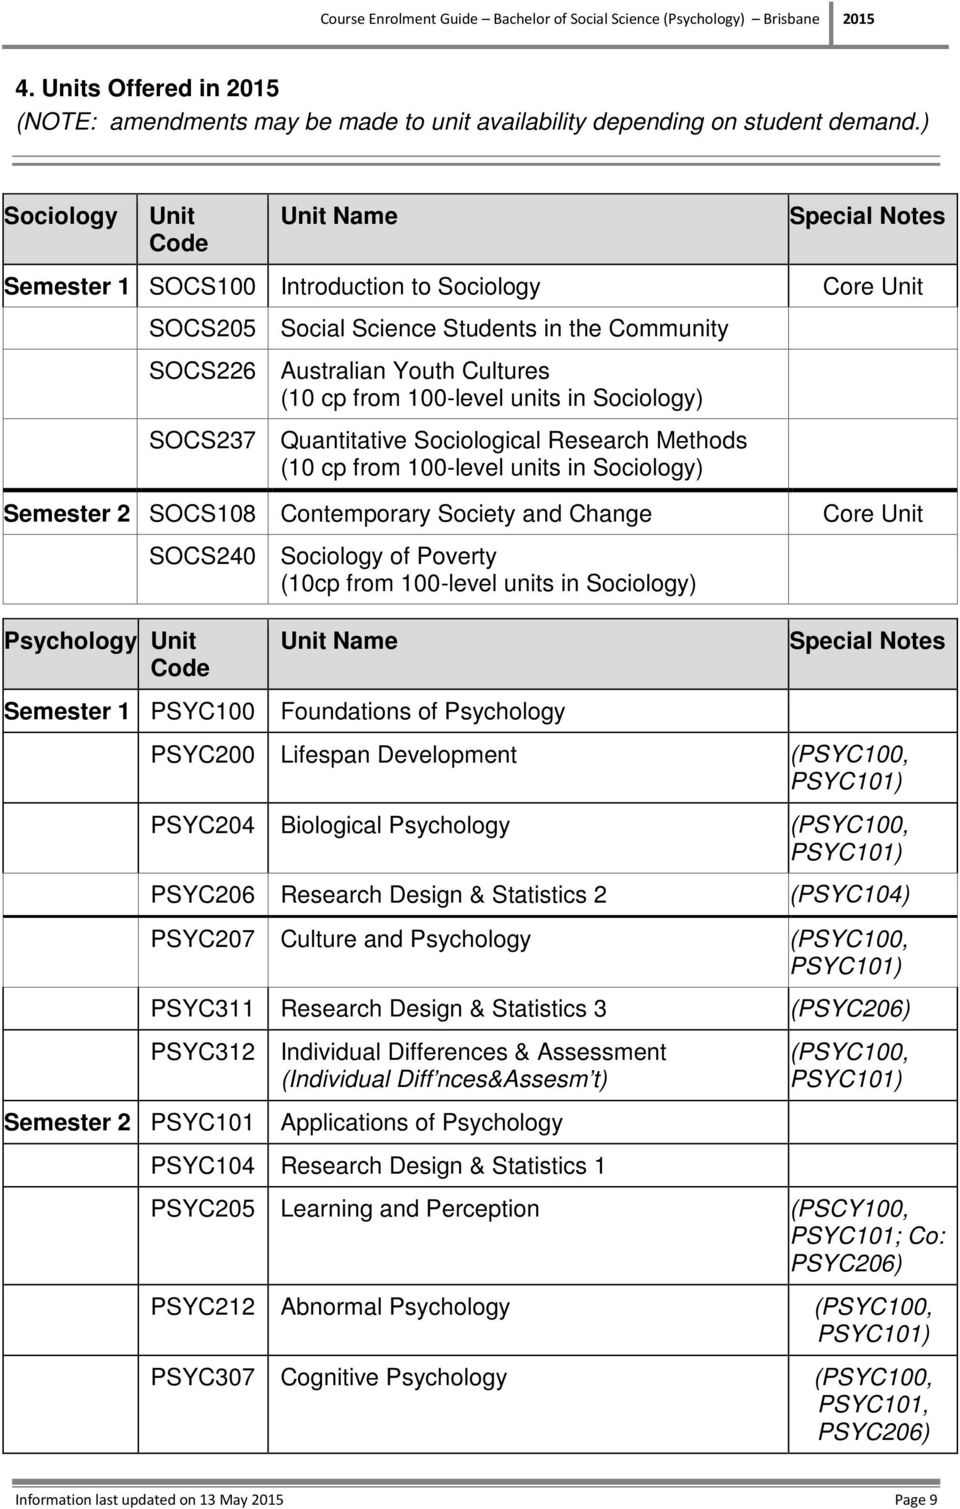 Sociology) SOCS237 Quantitative Sociological Research Methods (10 cp from 100-level units in Sociology) Semester 2 SOCS108 Contemporary Society and Change SOCS240 Sociology of Poverty (10cp from